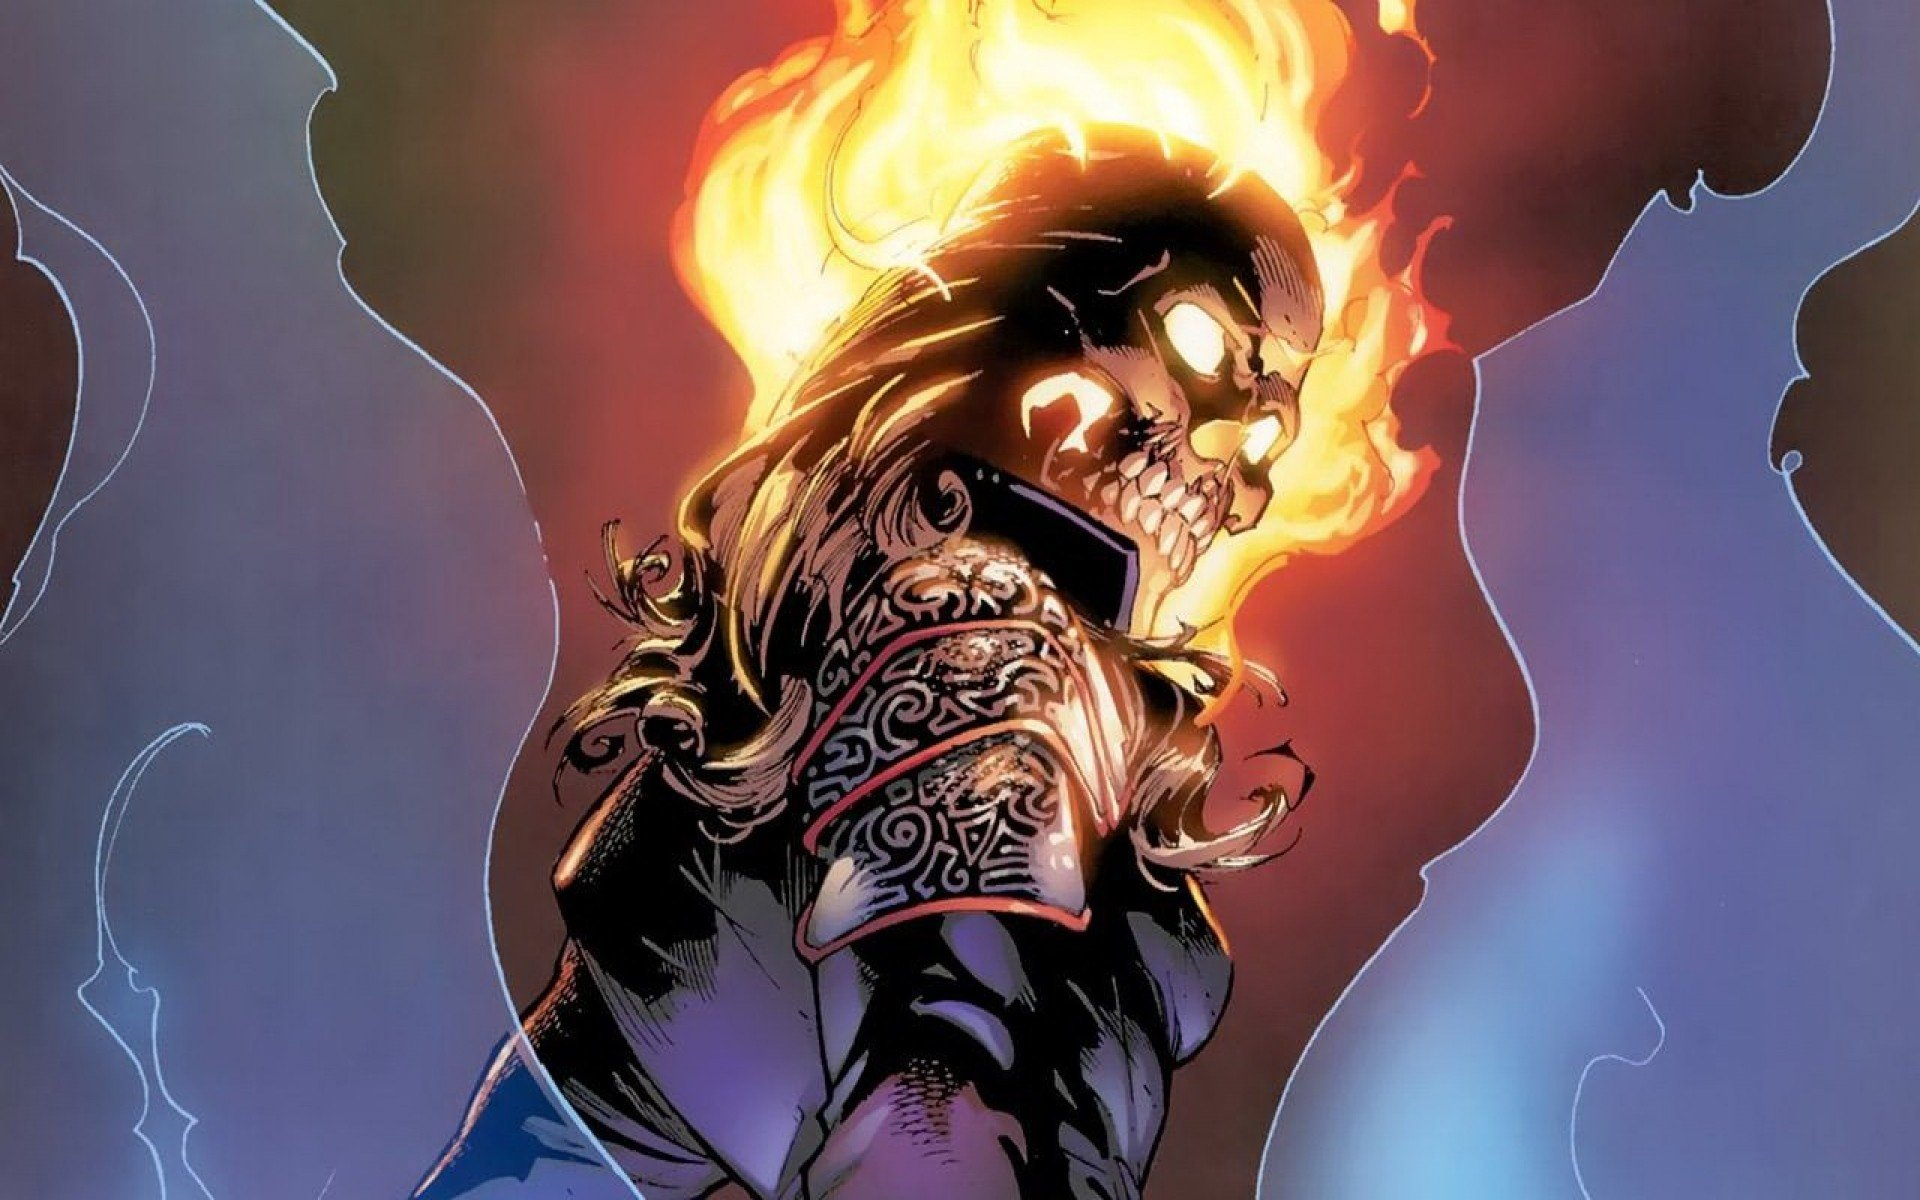 Cool Wallpaper Marvel Ghost Rider - 3edb985ac26dab16a49777fe157d132d  Graphic_807115.jpg